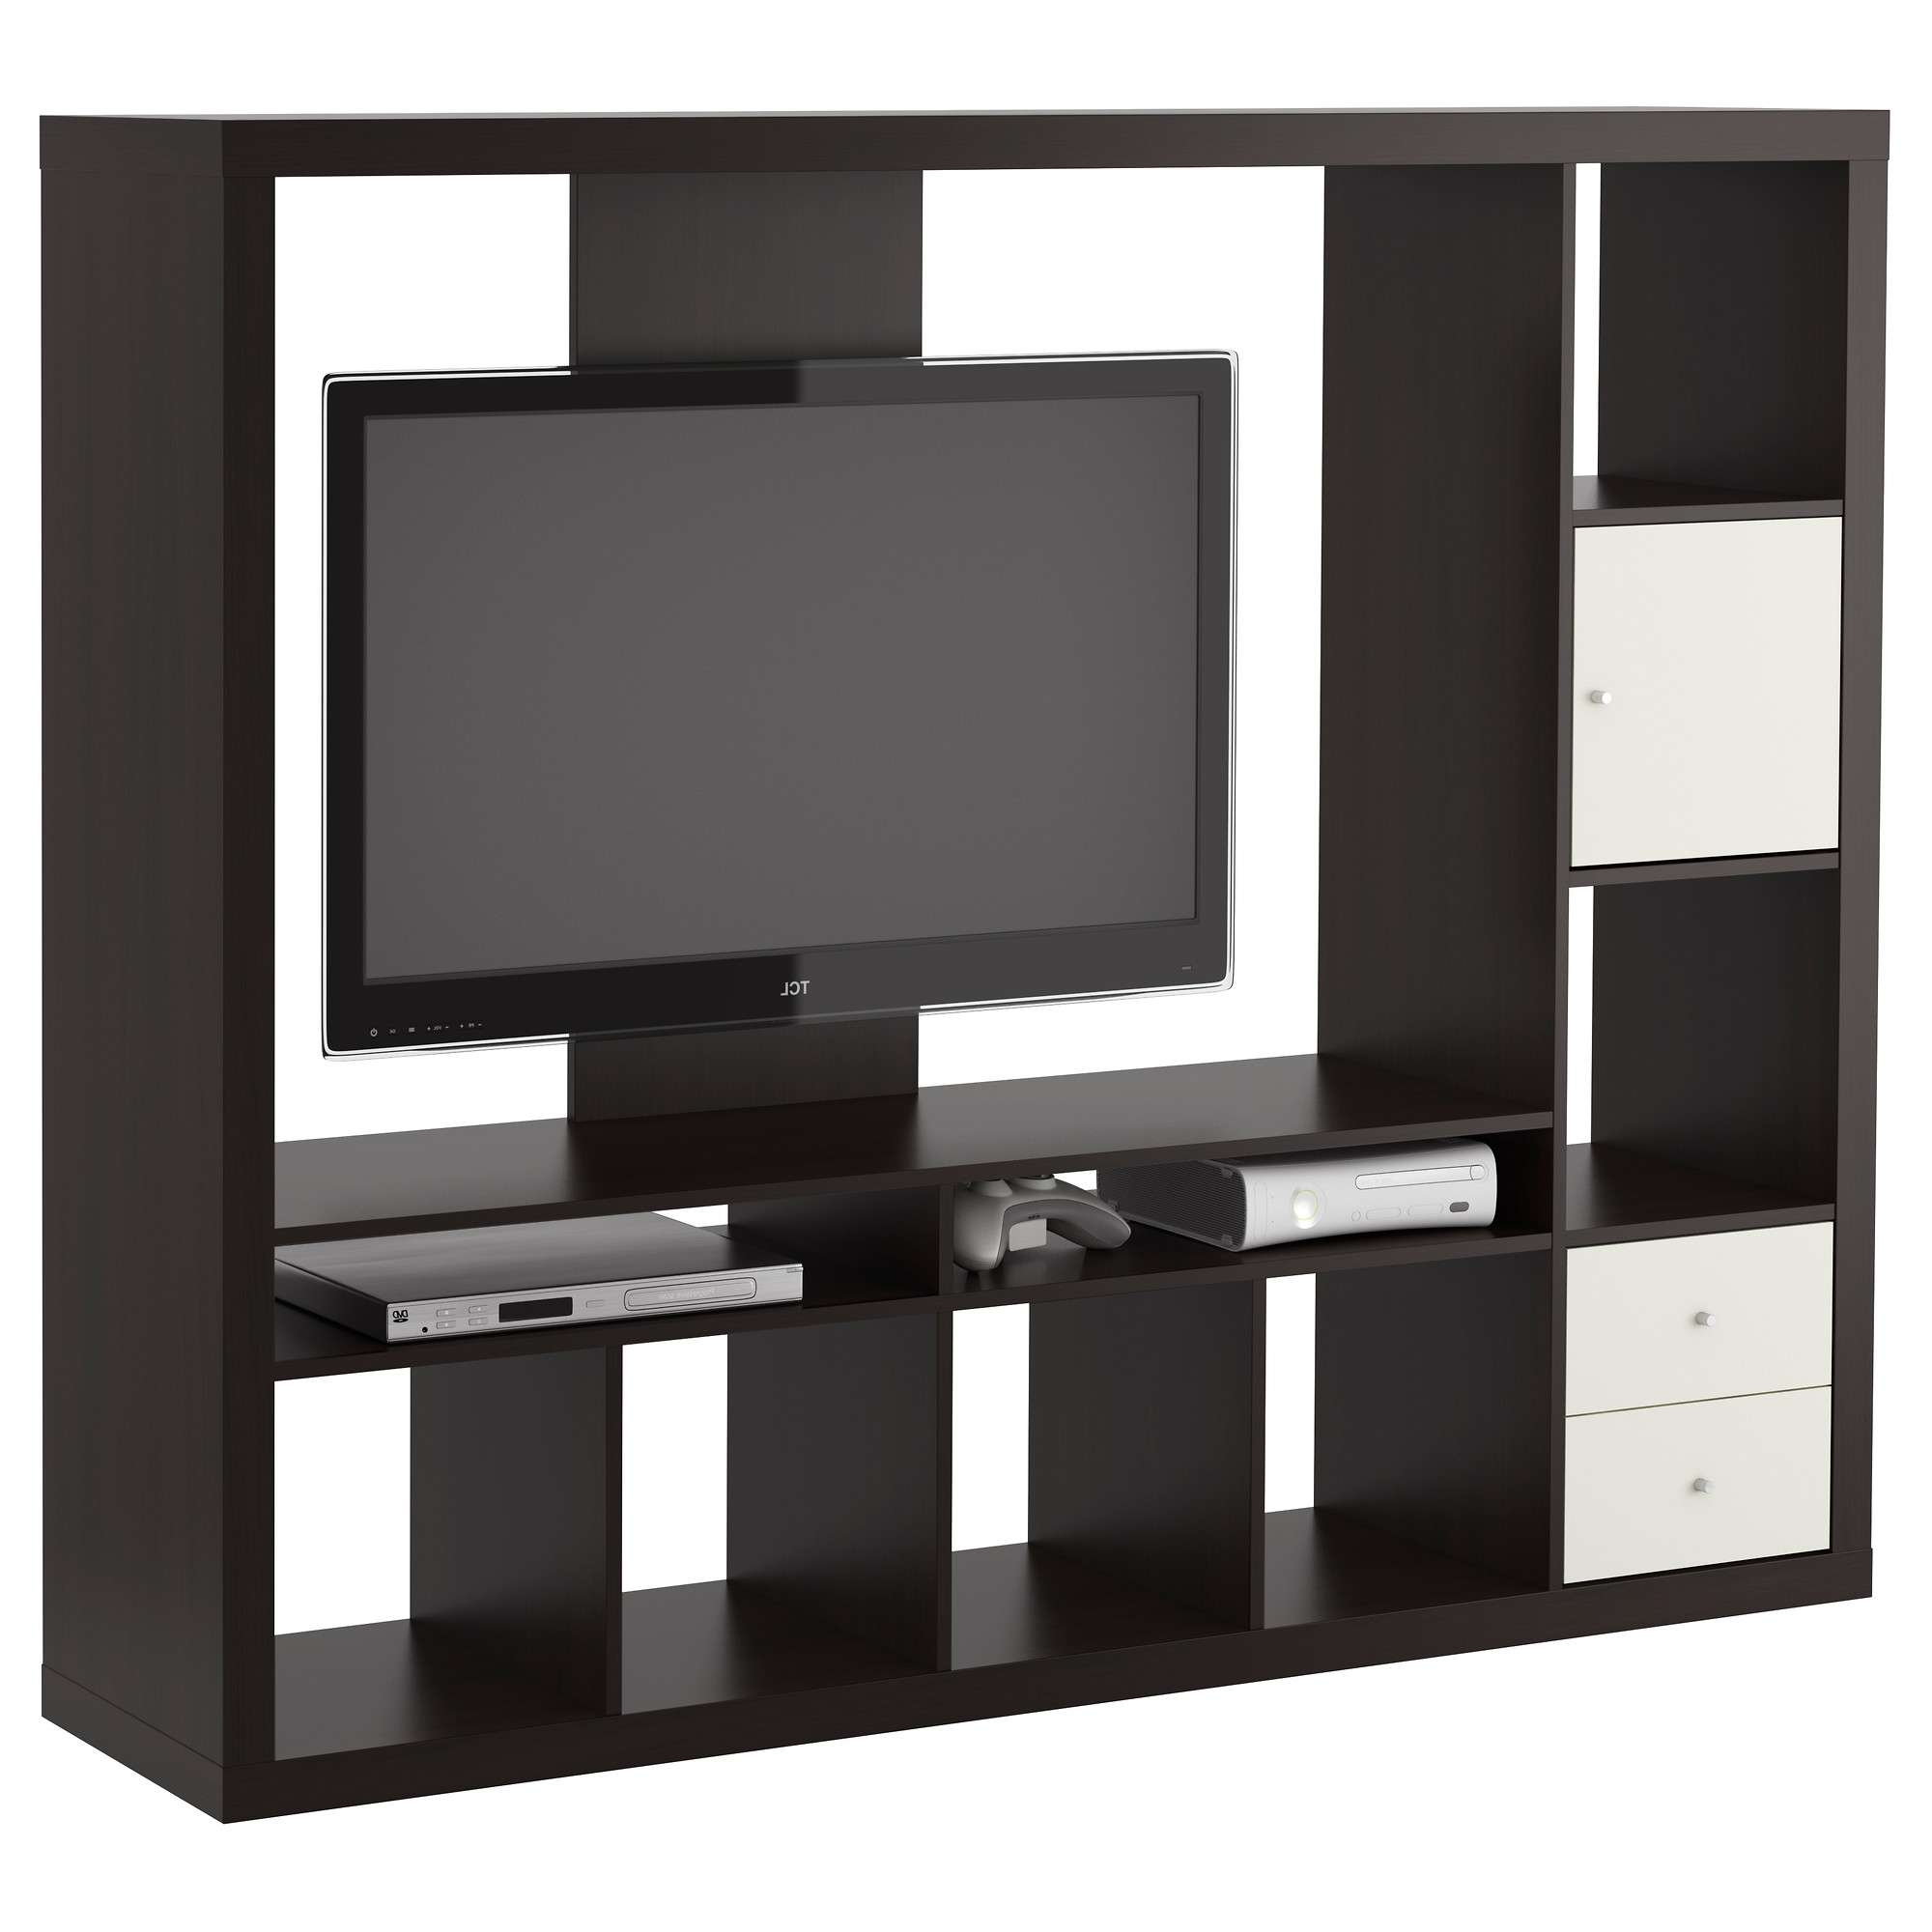 Bedroom Design : Wonderful Corner Tv Stand With Mount Dark Wood Tv Within Wooden Tv Stands And Cabinets (View 6 of 15)